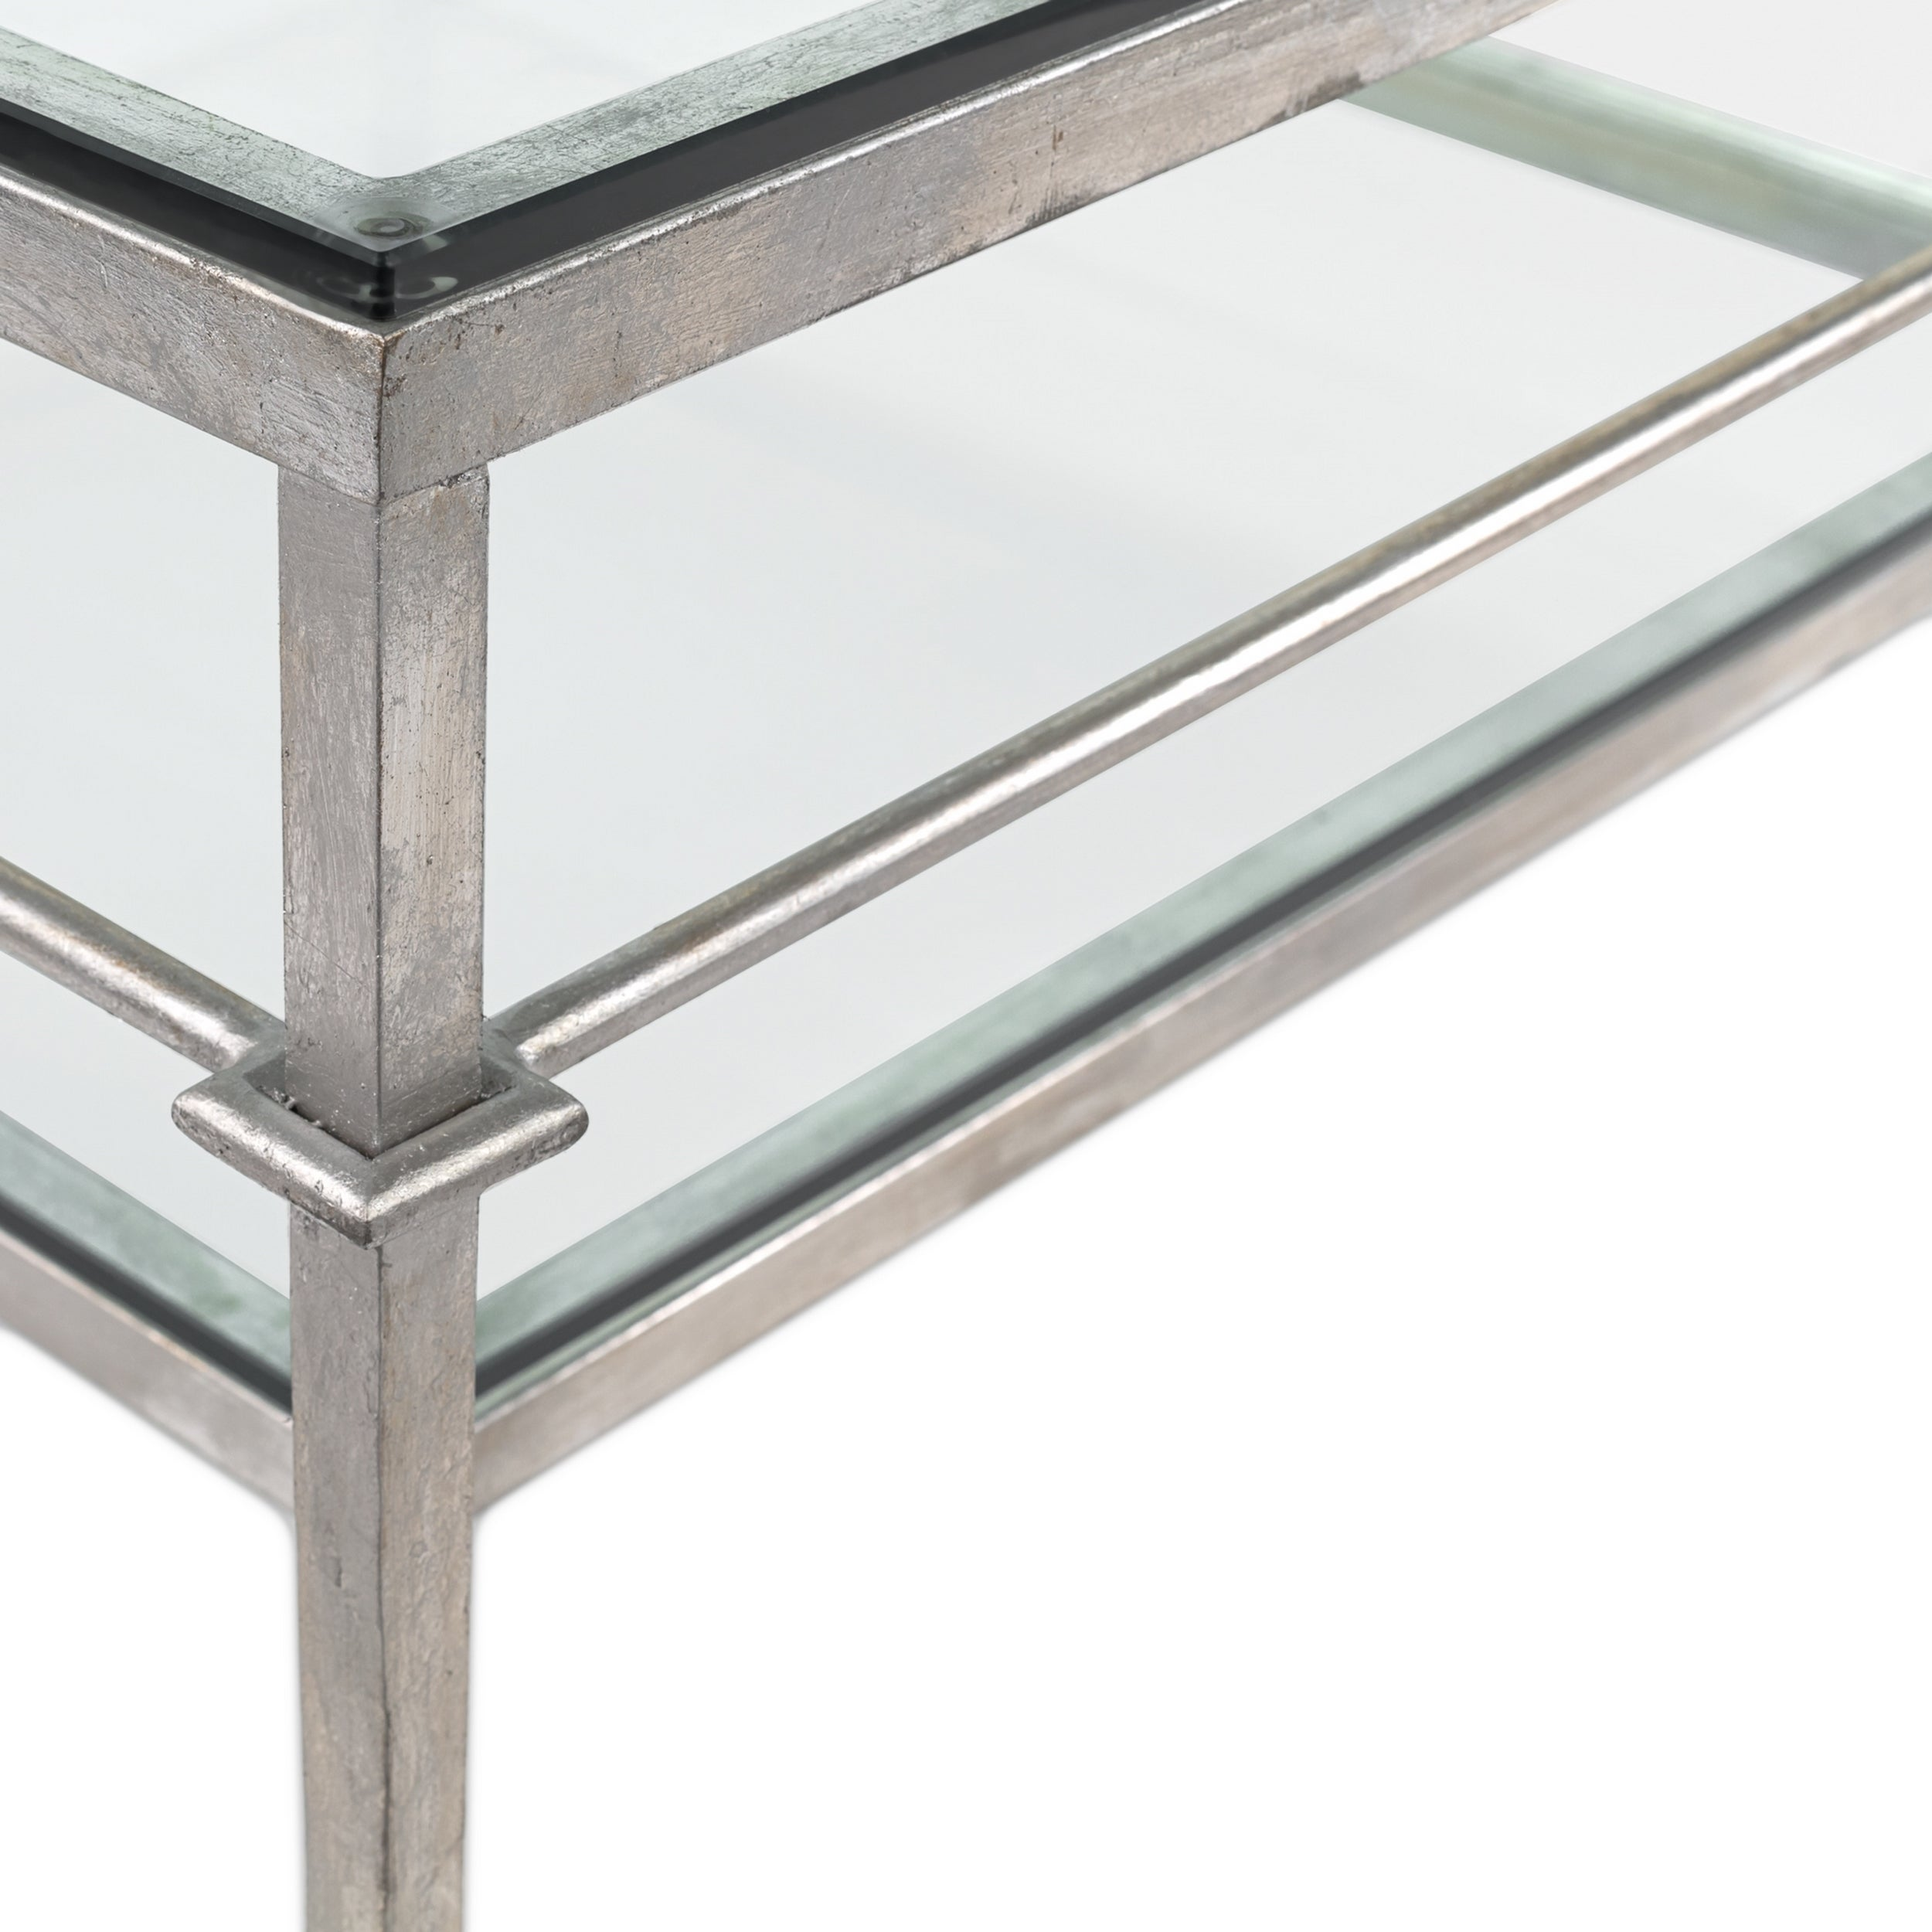 Ordinaire Shop Safavieh Couture High Line Collection Mieka Silver Leaf Silver  Cocktail Table   Free Shipping Today   Overstock.com   11188658